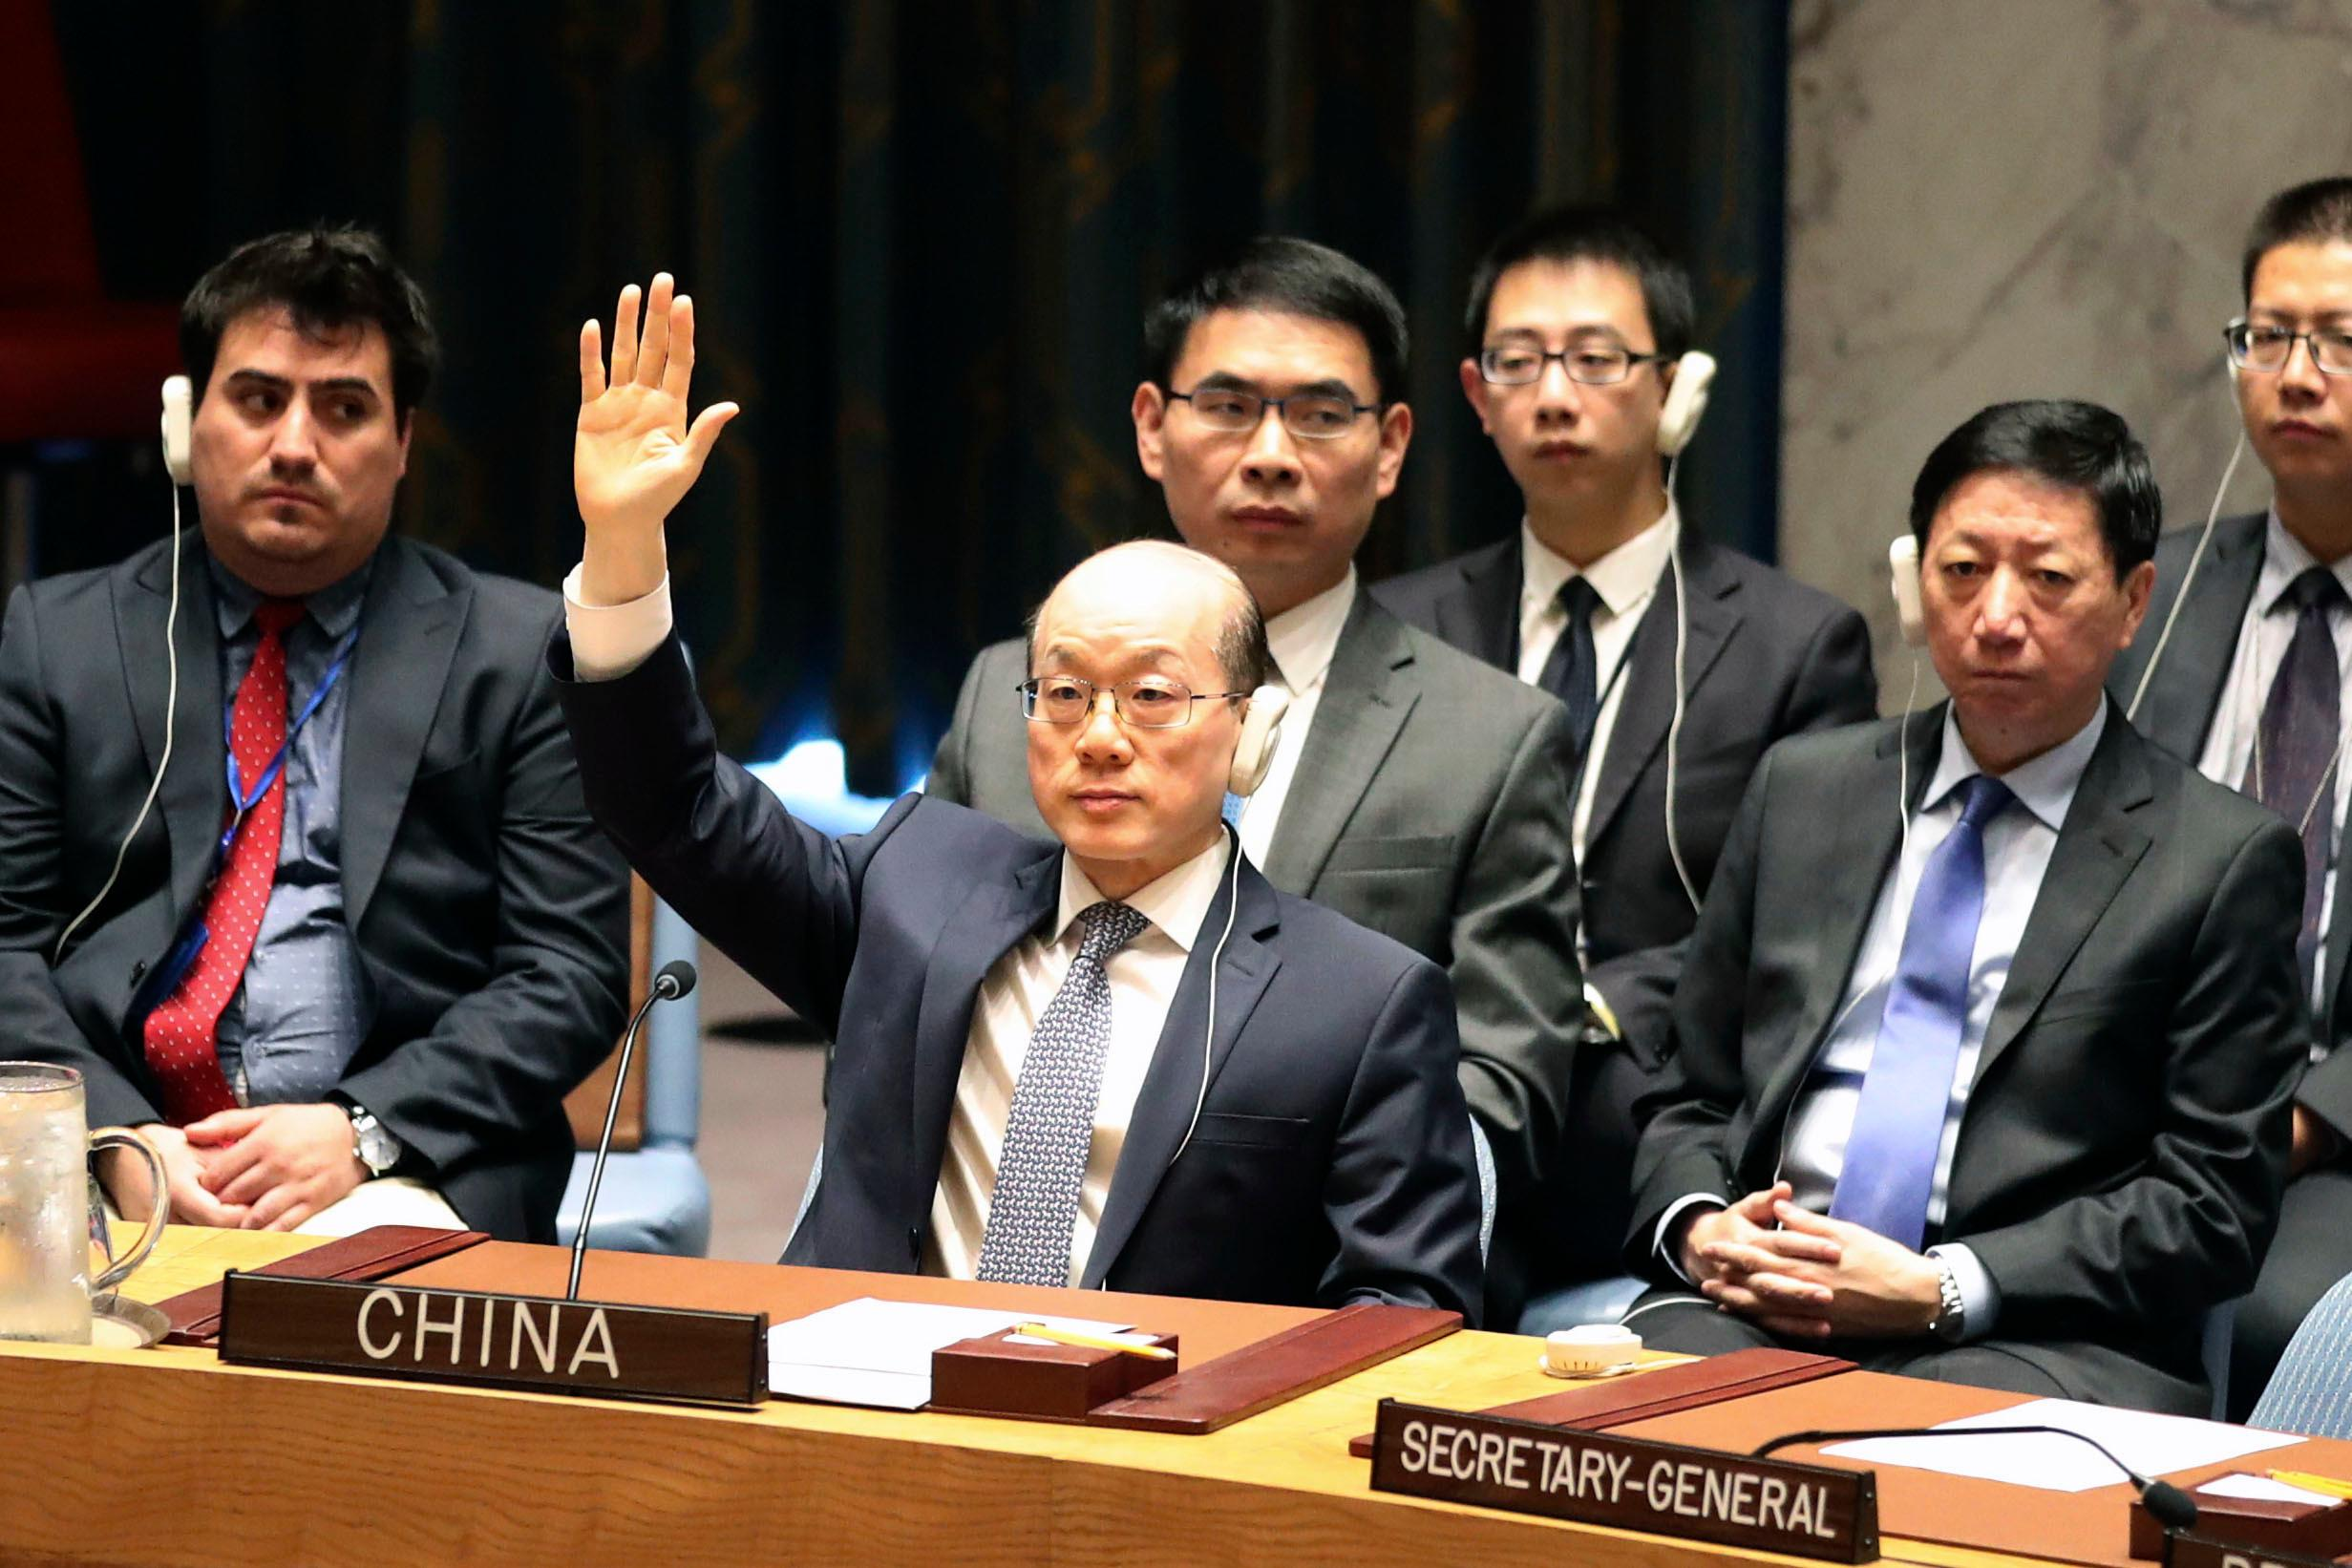 Chinese Ambassador to the United Nations Liu Jieyu votes during a Security Council meeting on a new sanctions resolution that would increase economic pressure on North Korea to return to negotiations on its missile program, Saturday, Aug. 5, 2017 at U.N. headquarters. (AP Photo/Mary Altaffer)